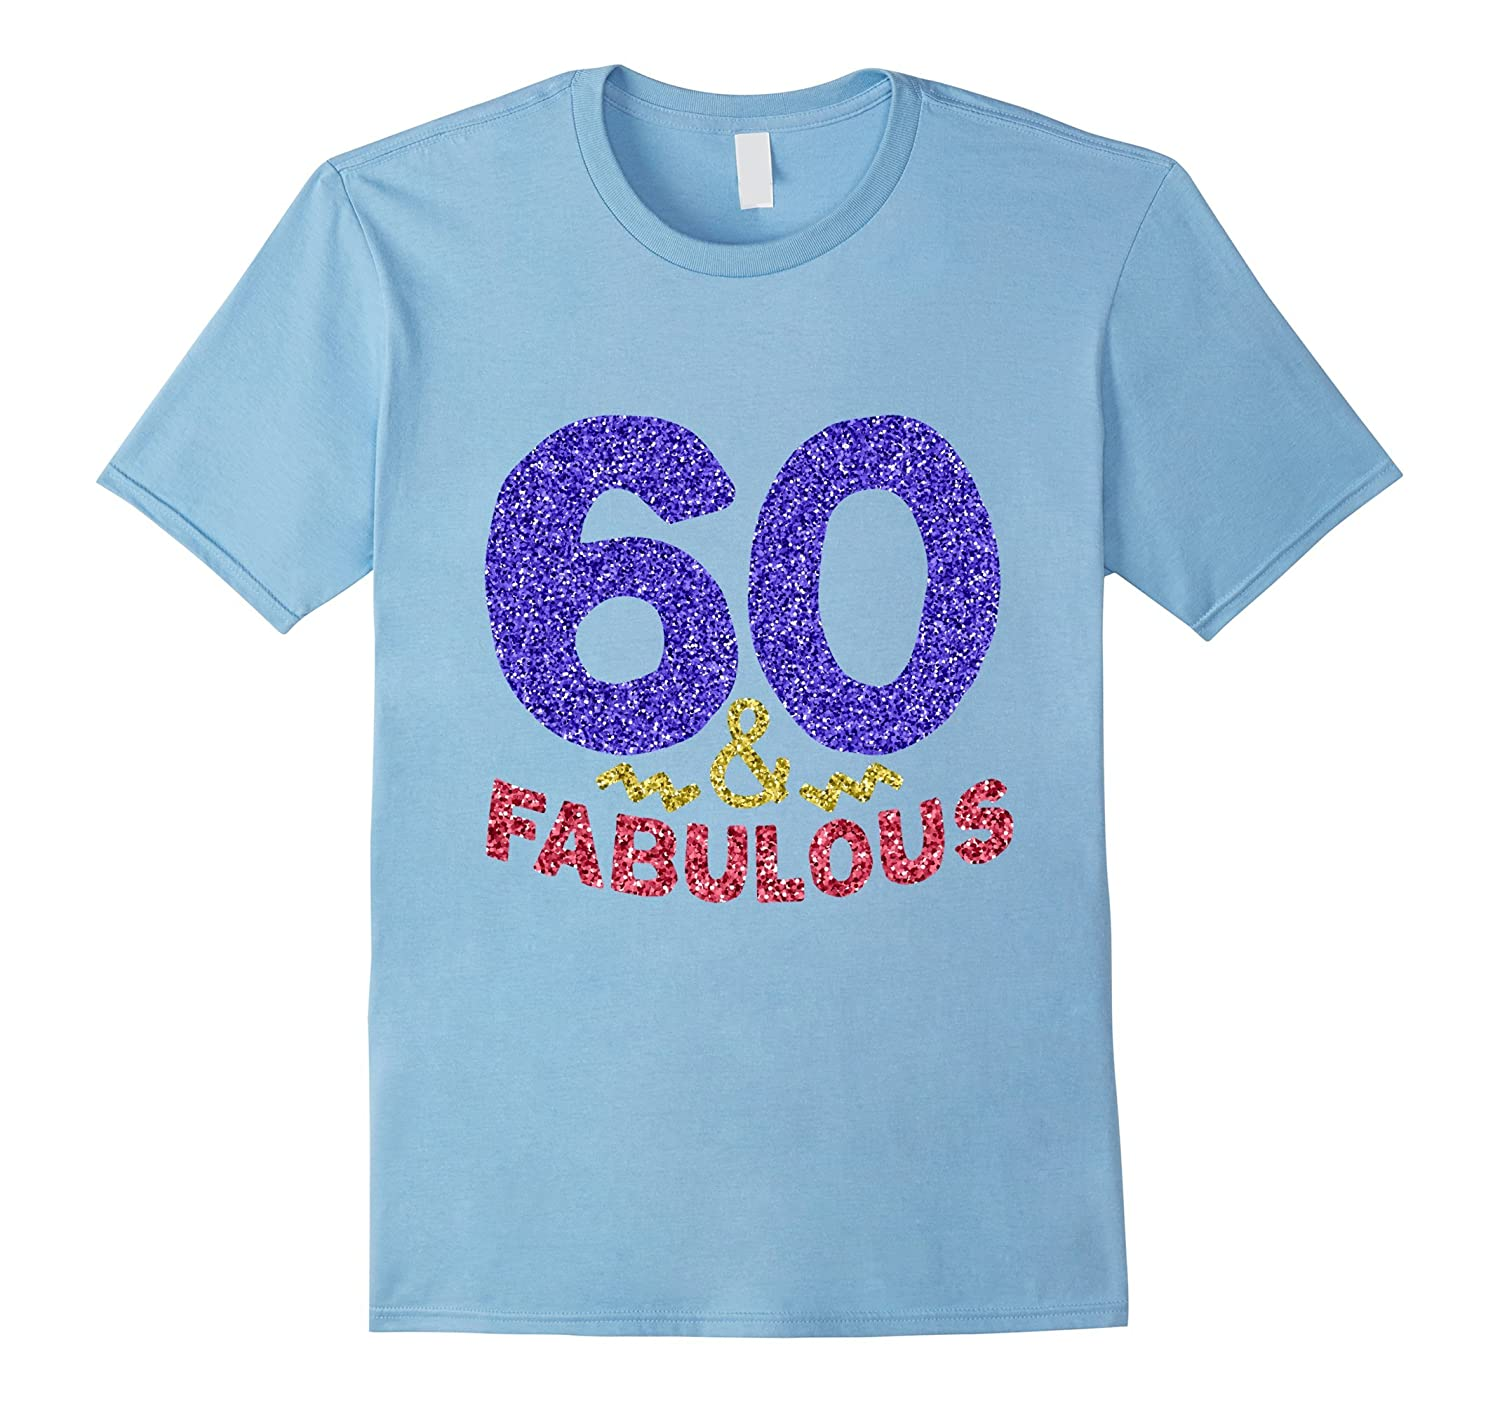 60th Birthday Shirt Funny 60 Year Old Gift Tshirt Men Womens-TJ